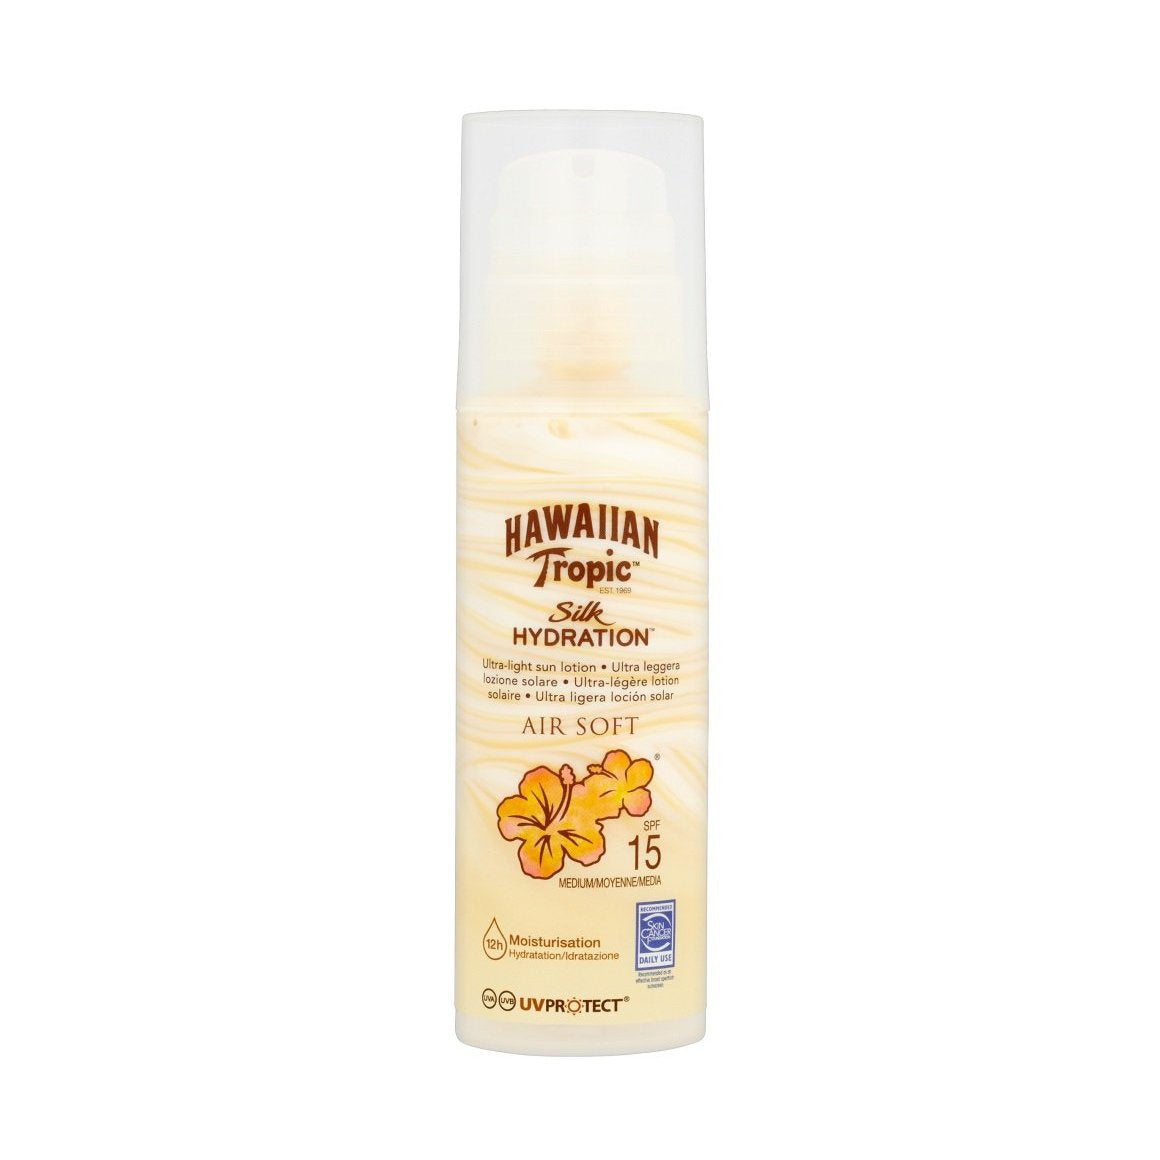 Hawaiian Tropic Silk Hydration Air Soft Sun Lotion SPF 15